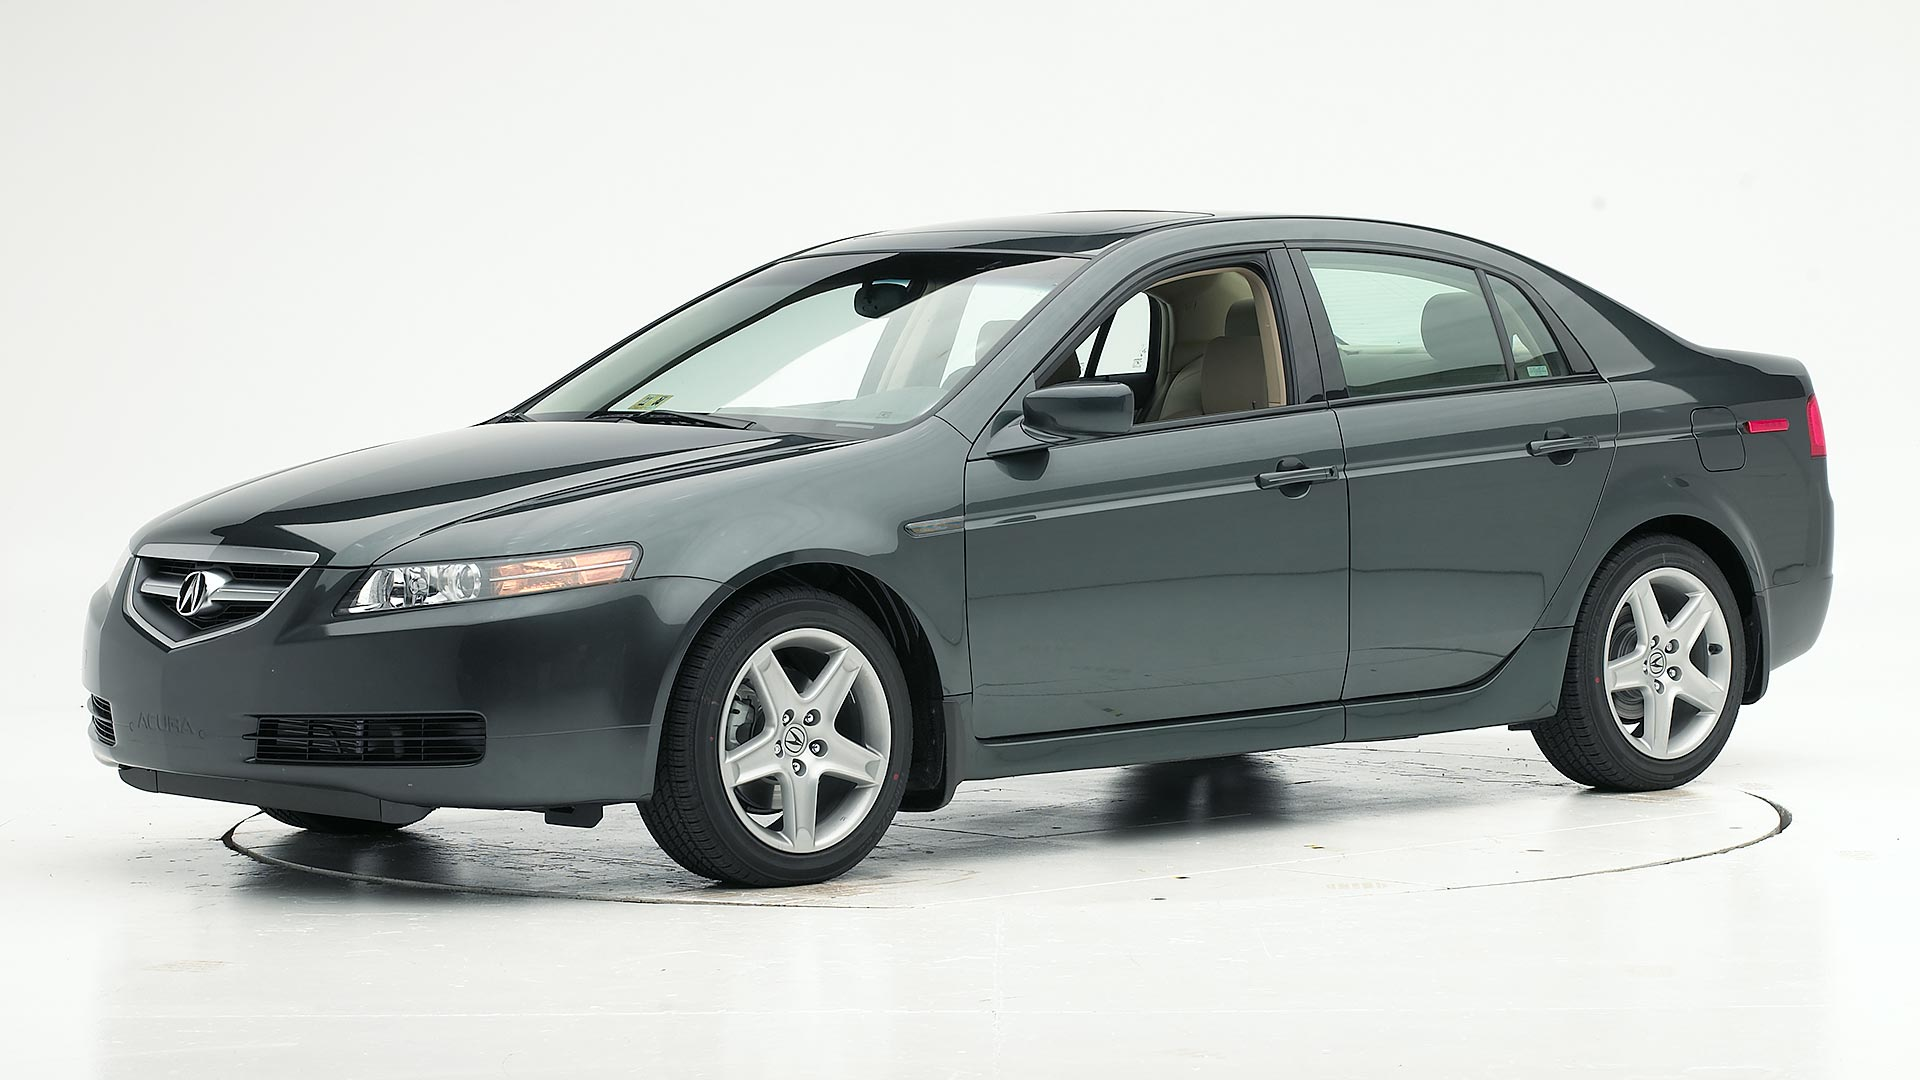 2006 Acura TL 4-door sedan